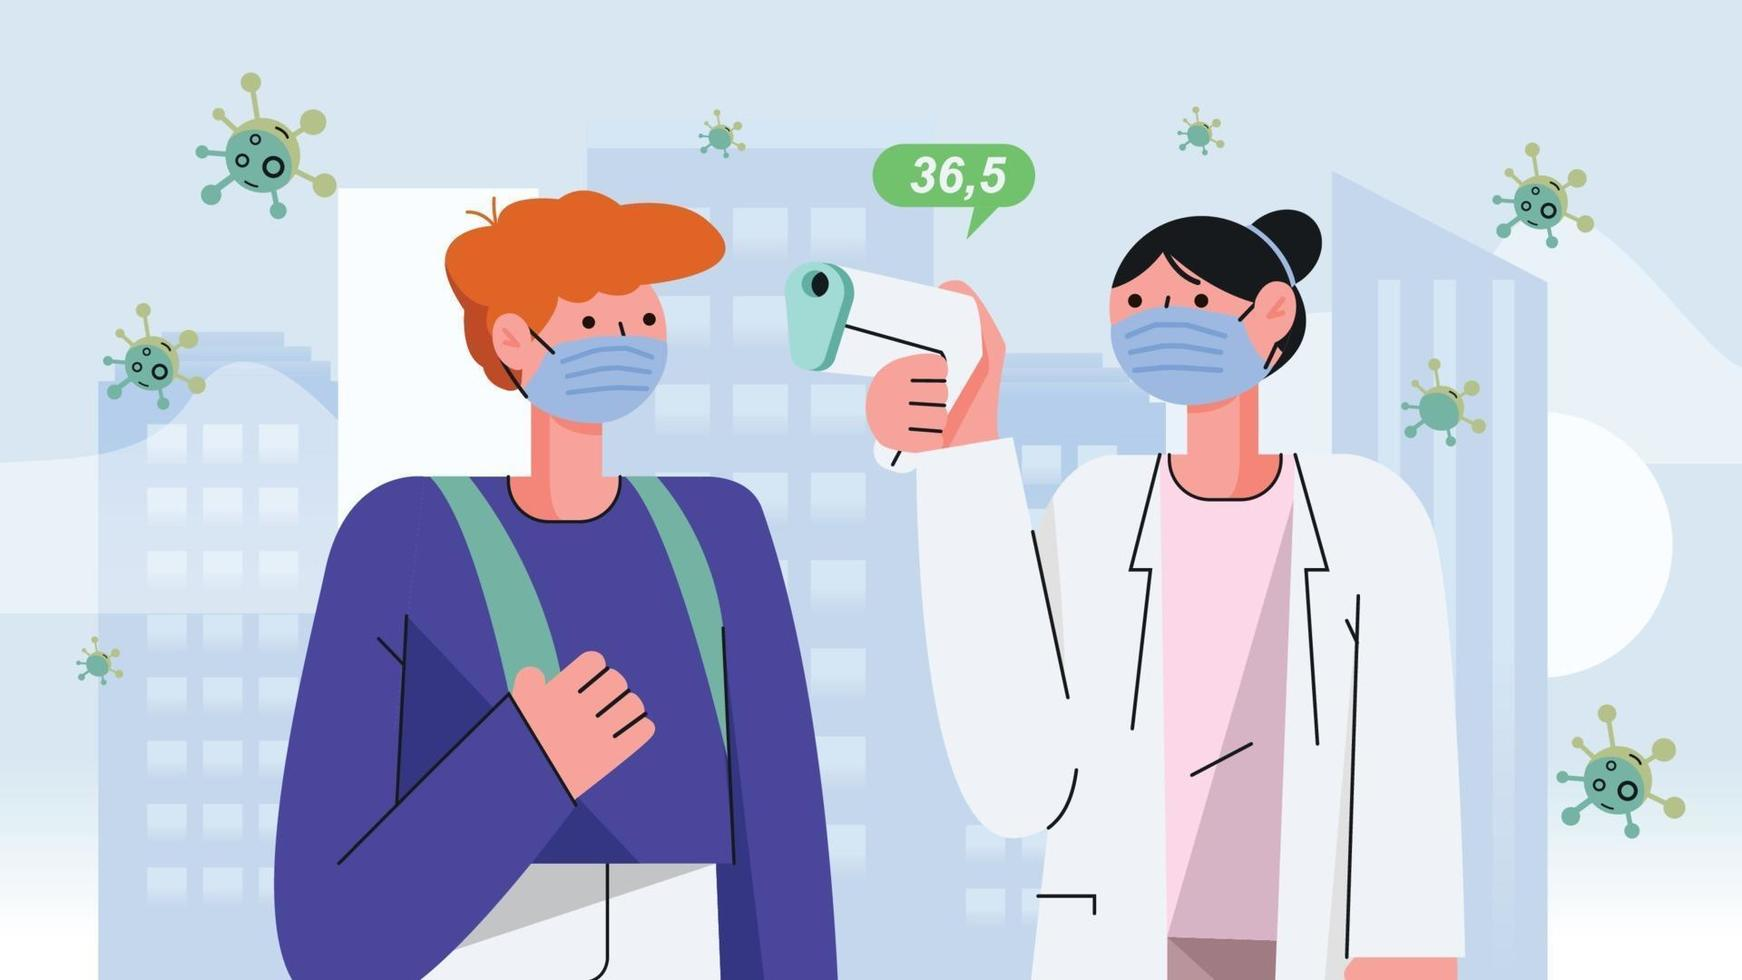 The Doctor using digital Thermometer to Check Body Temperature patient's in public area, Flat illustration vector